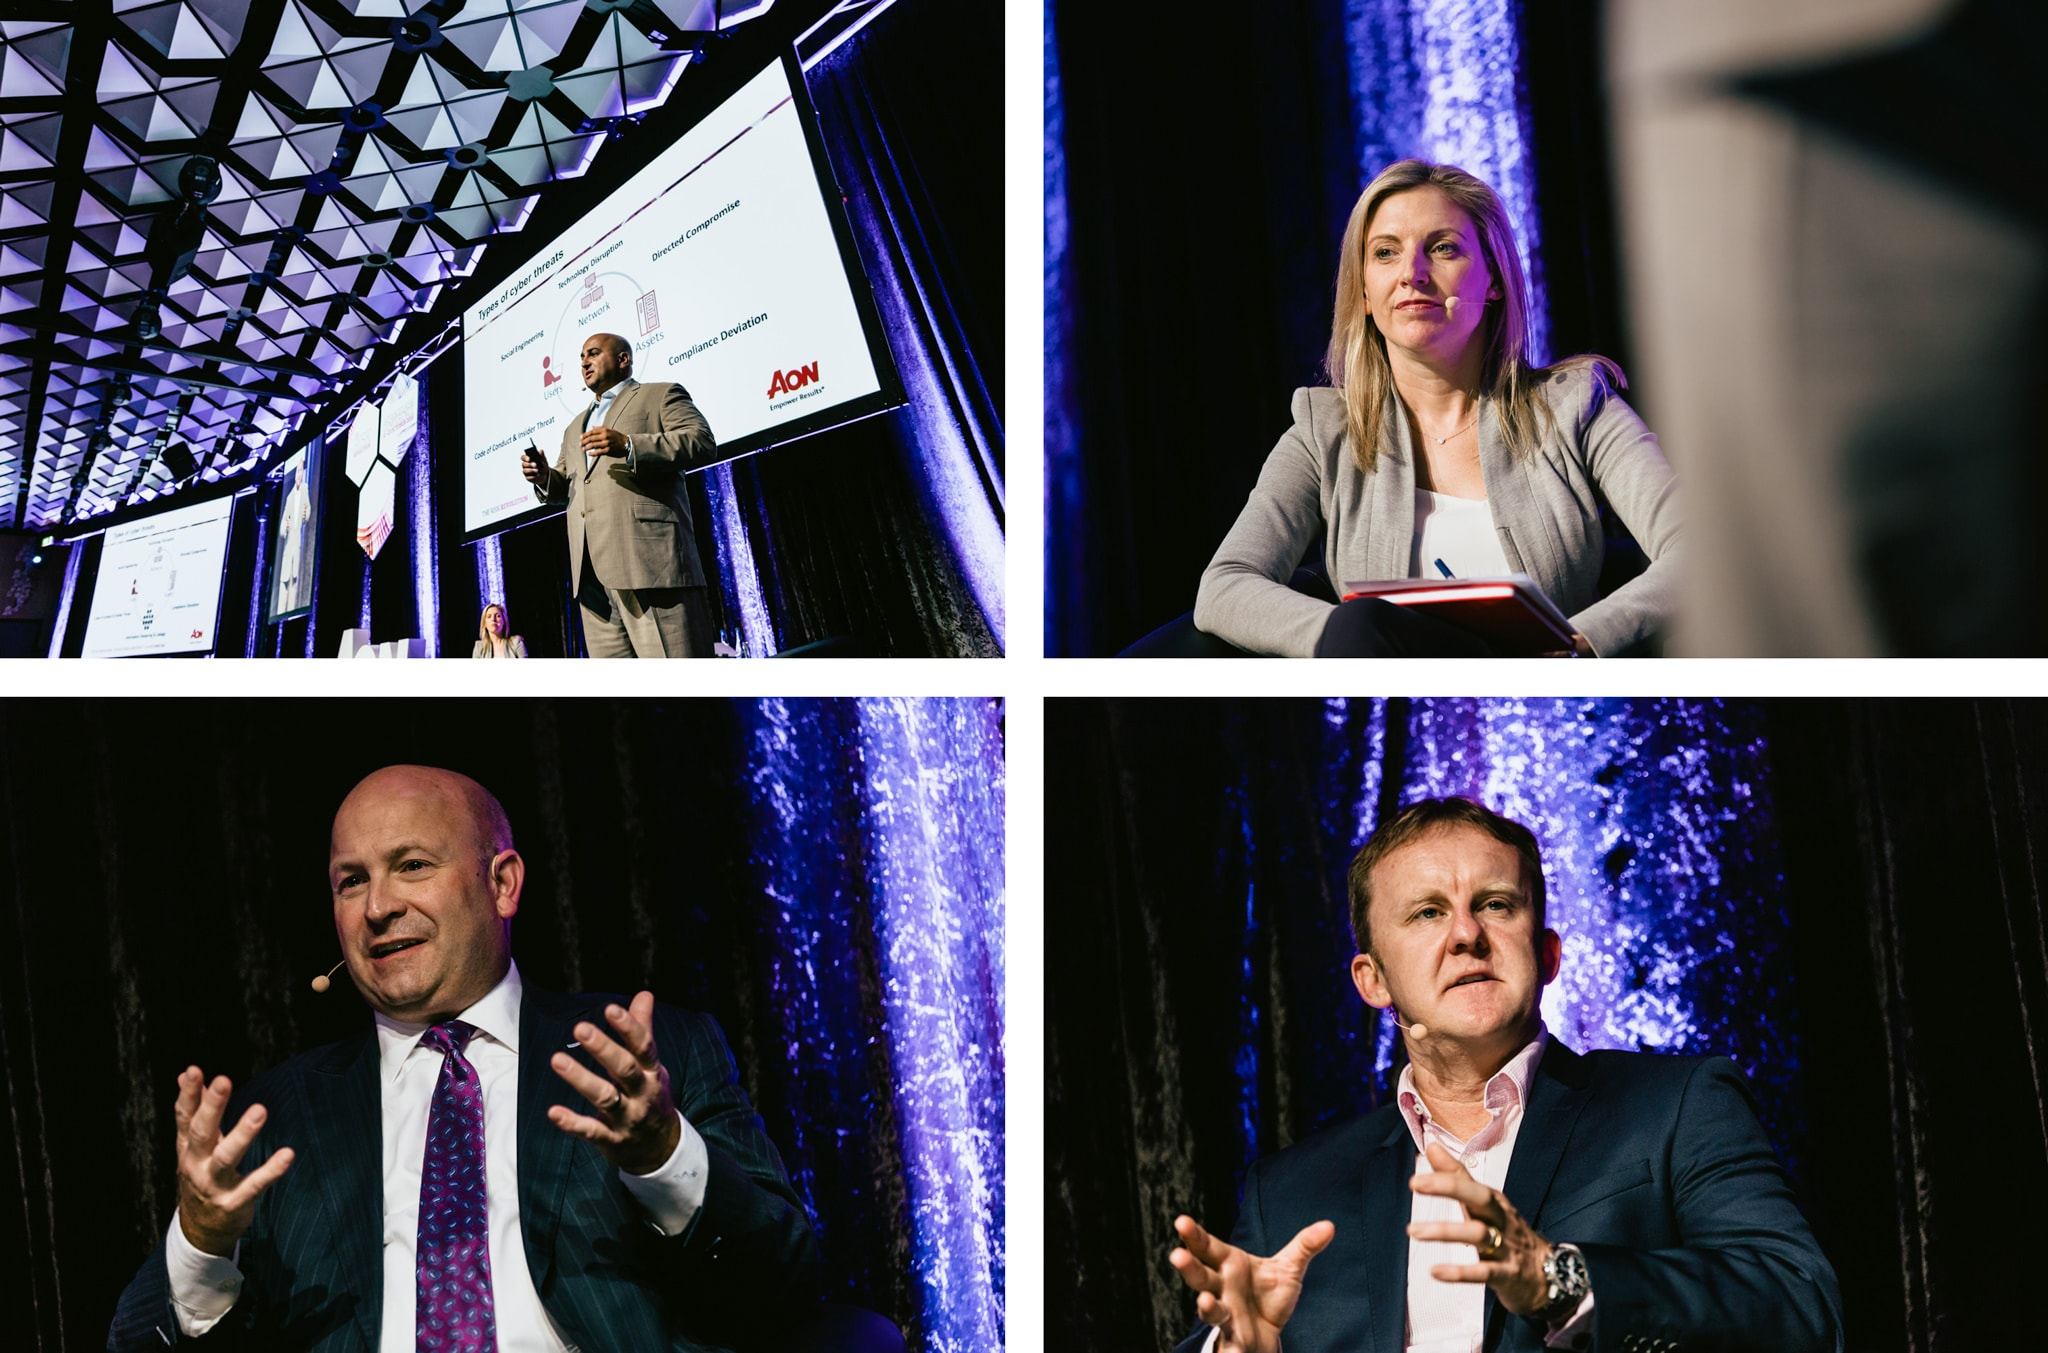 speakers-at-conference-photography-melbourne